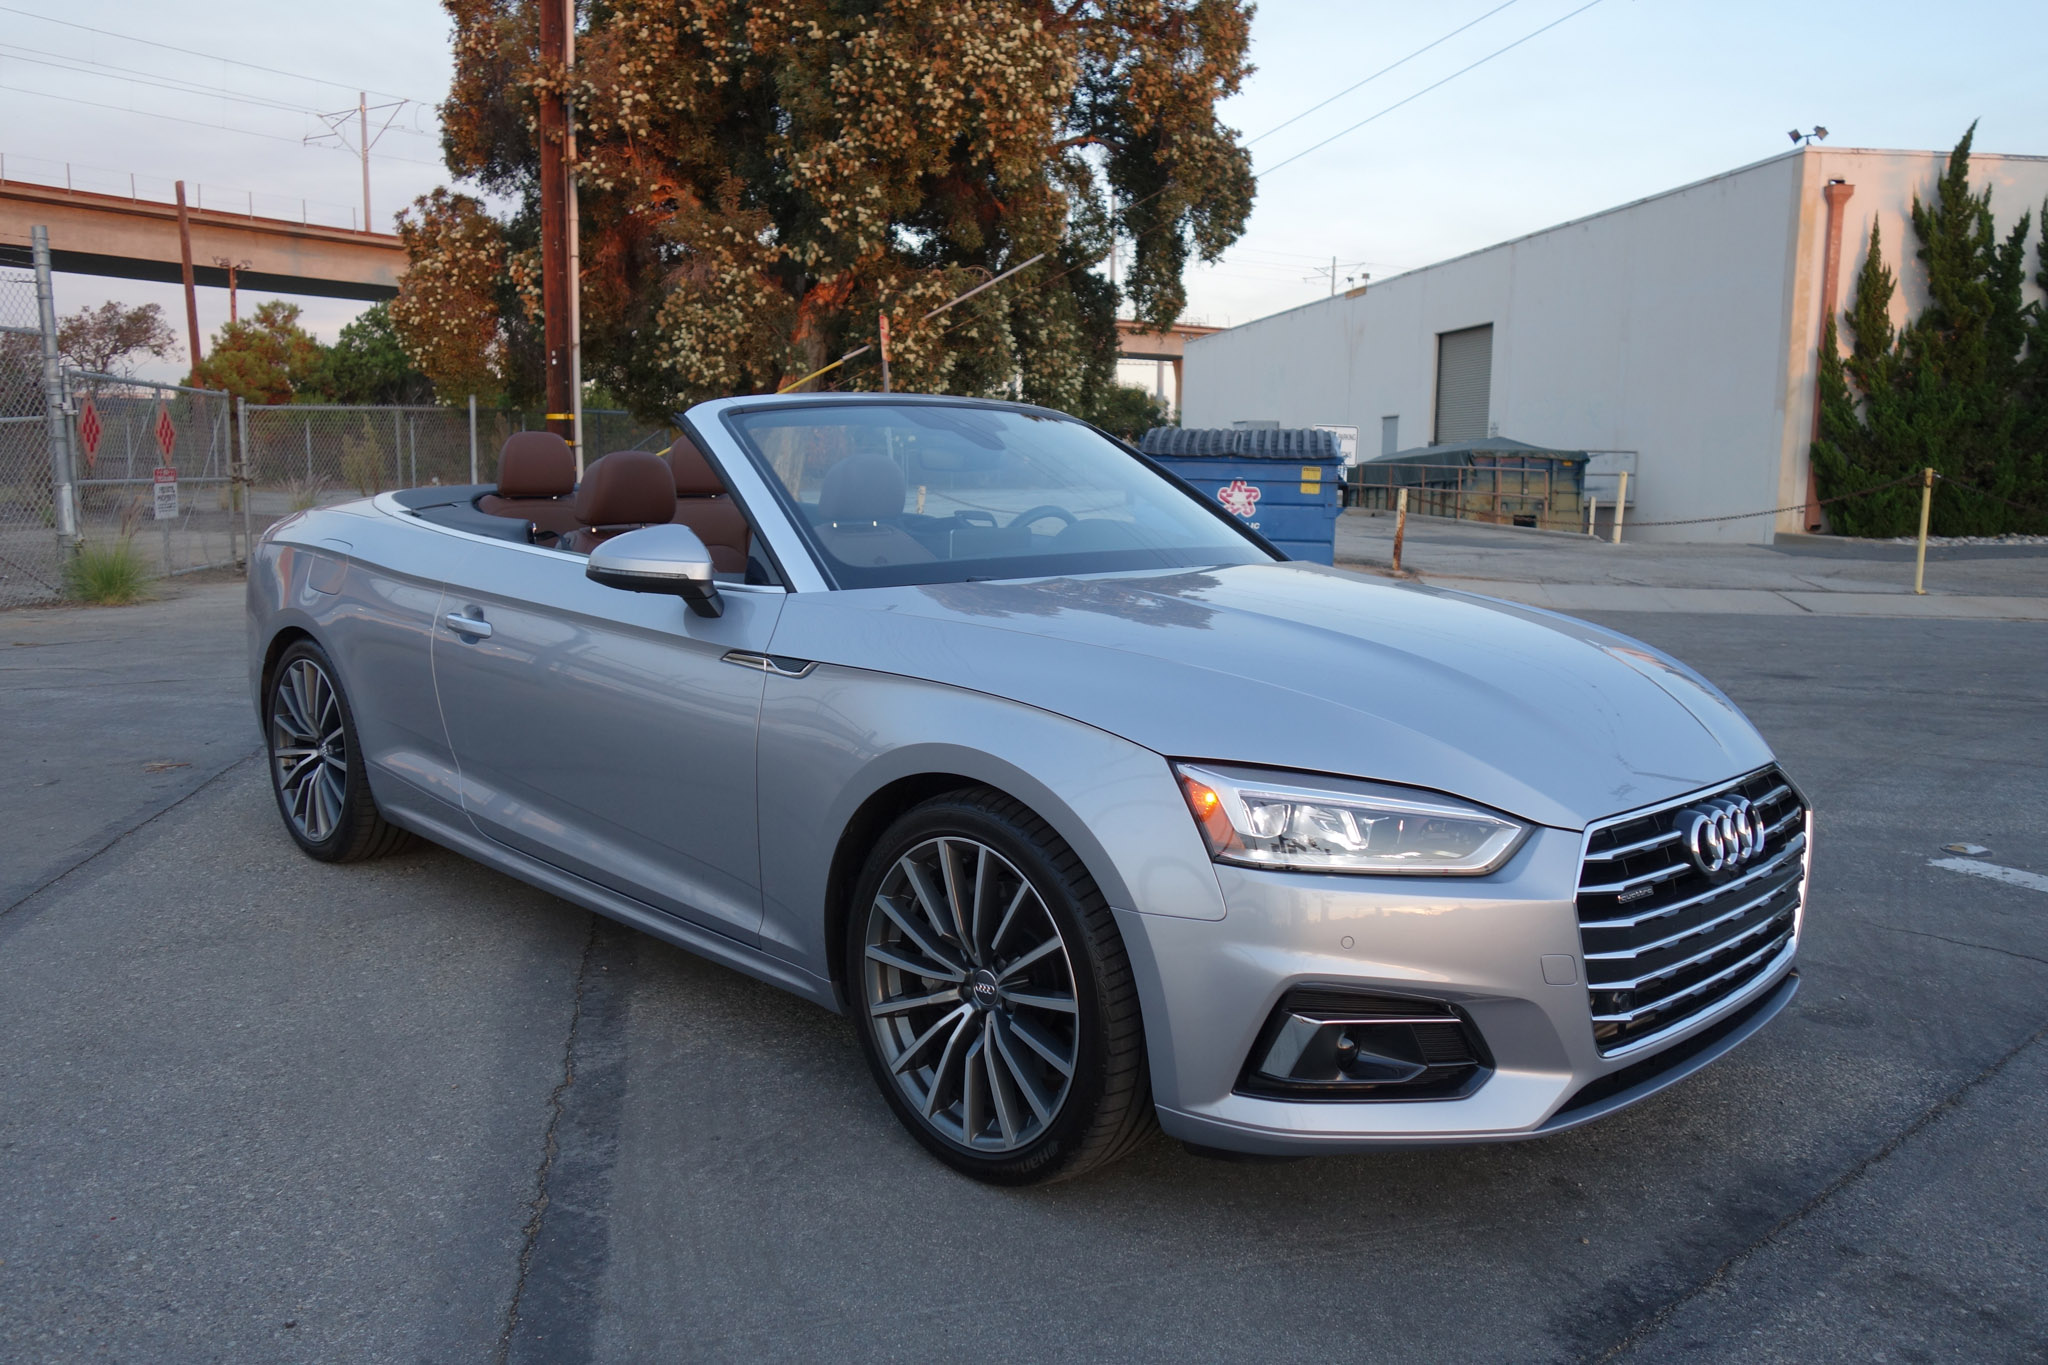 three things we love about the 2018 audi a5 cabriolet 2 0t. Black Bedroom Furniture Sets. Home Design Ideas